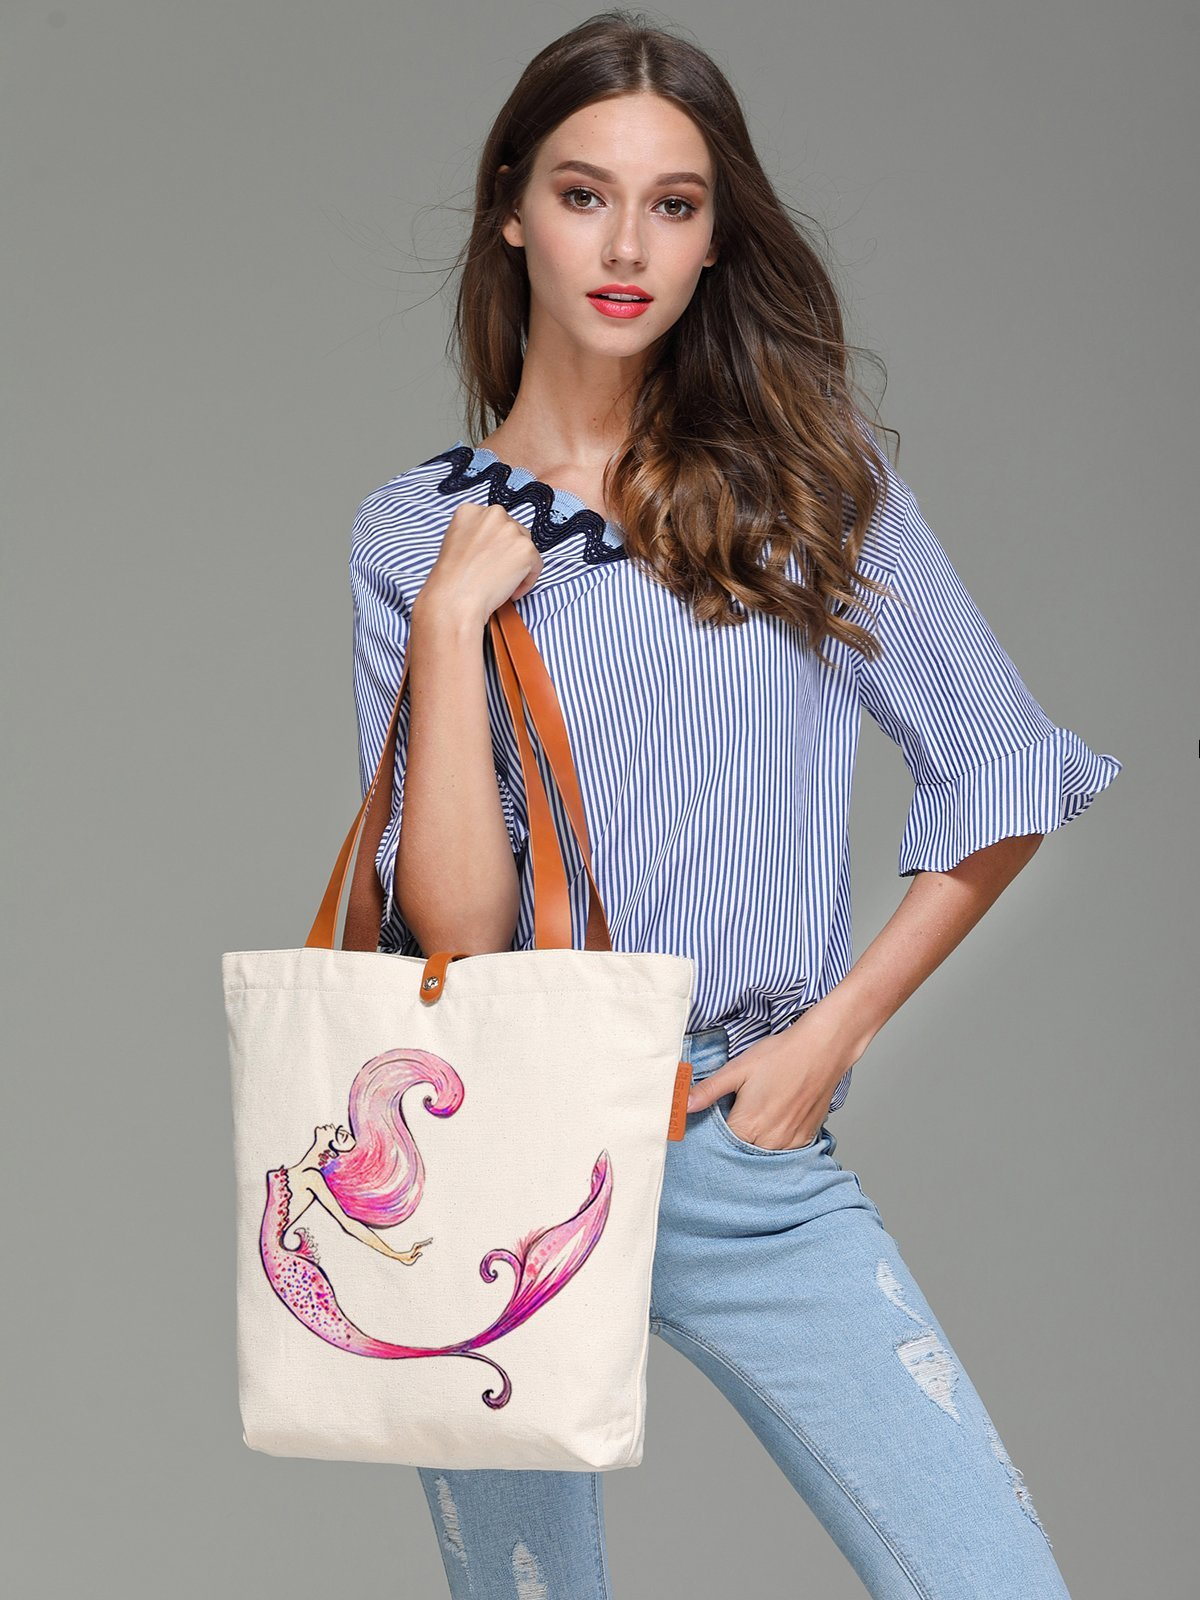 So'each Women's Colourful Mermaid Graphic Canvas Tote Shopper Shoulder Bag by So'each (Image #2)